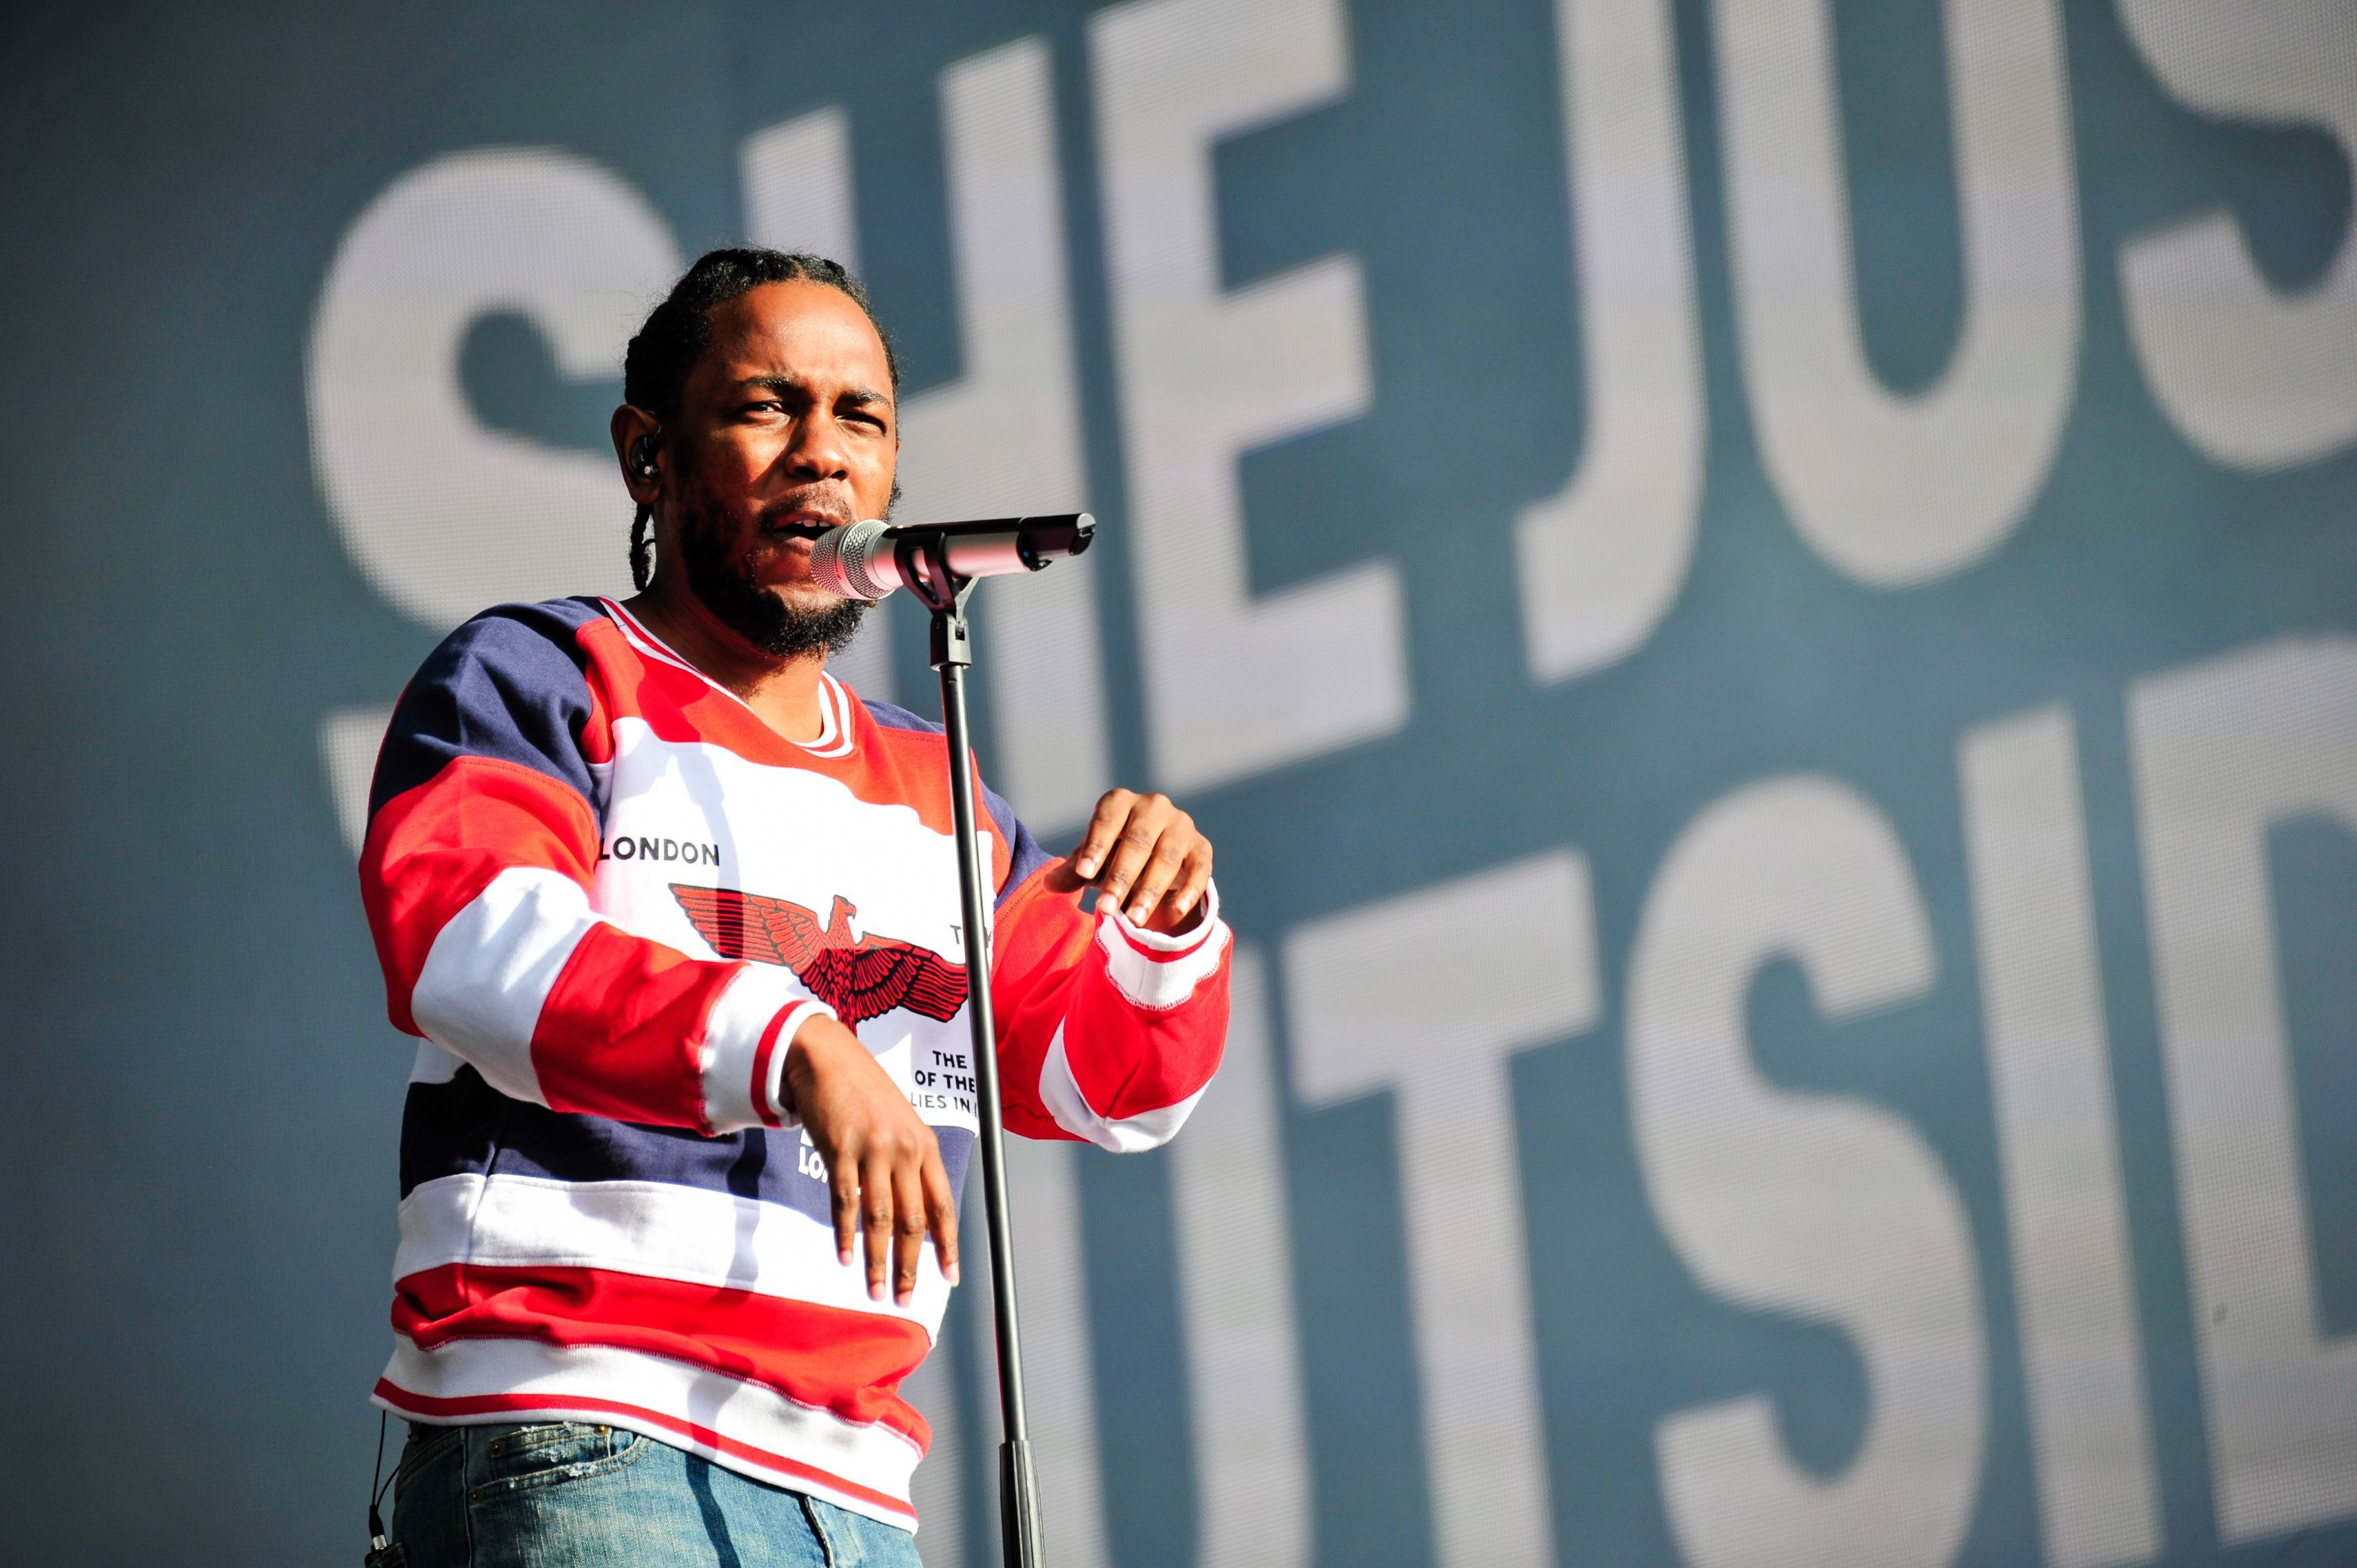 Kendrick Lamar performing at the British Summer Time festival at Hyde Park in London.